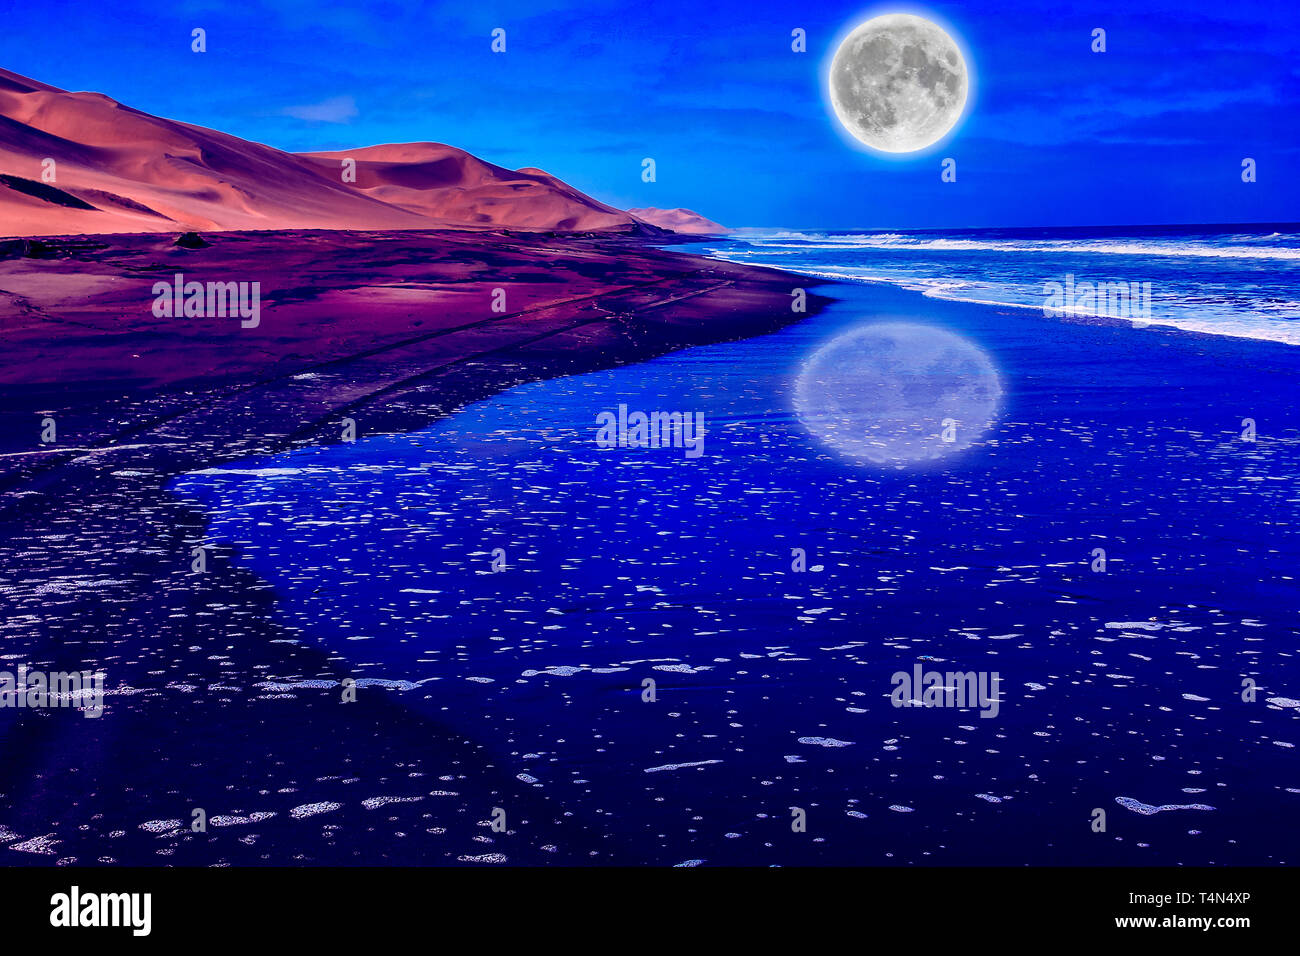 Night sky with clouds and big full moon at night on the sandy beach with dunes and ocean background by night reflecting. Sandwich Harbour, Walvis Bay - Stock Image